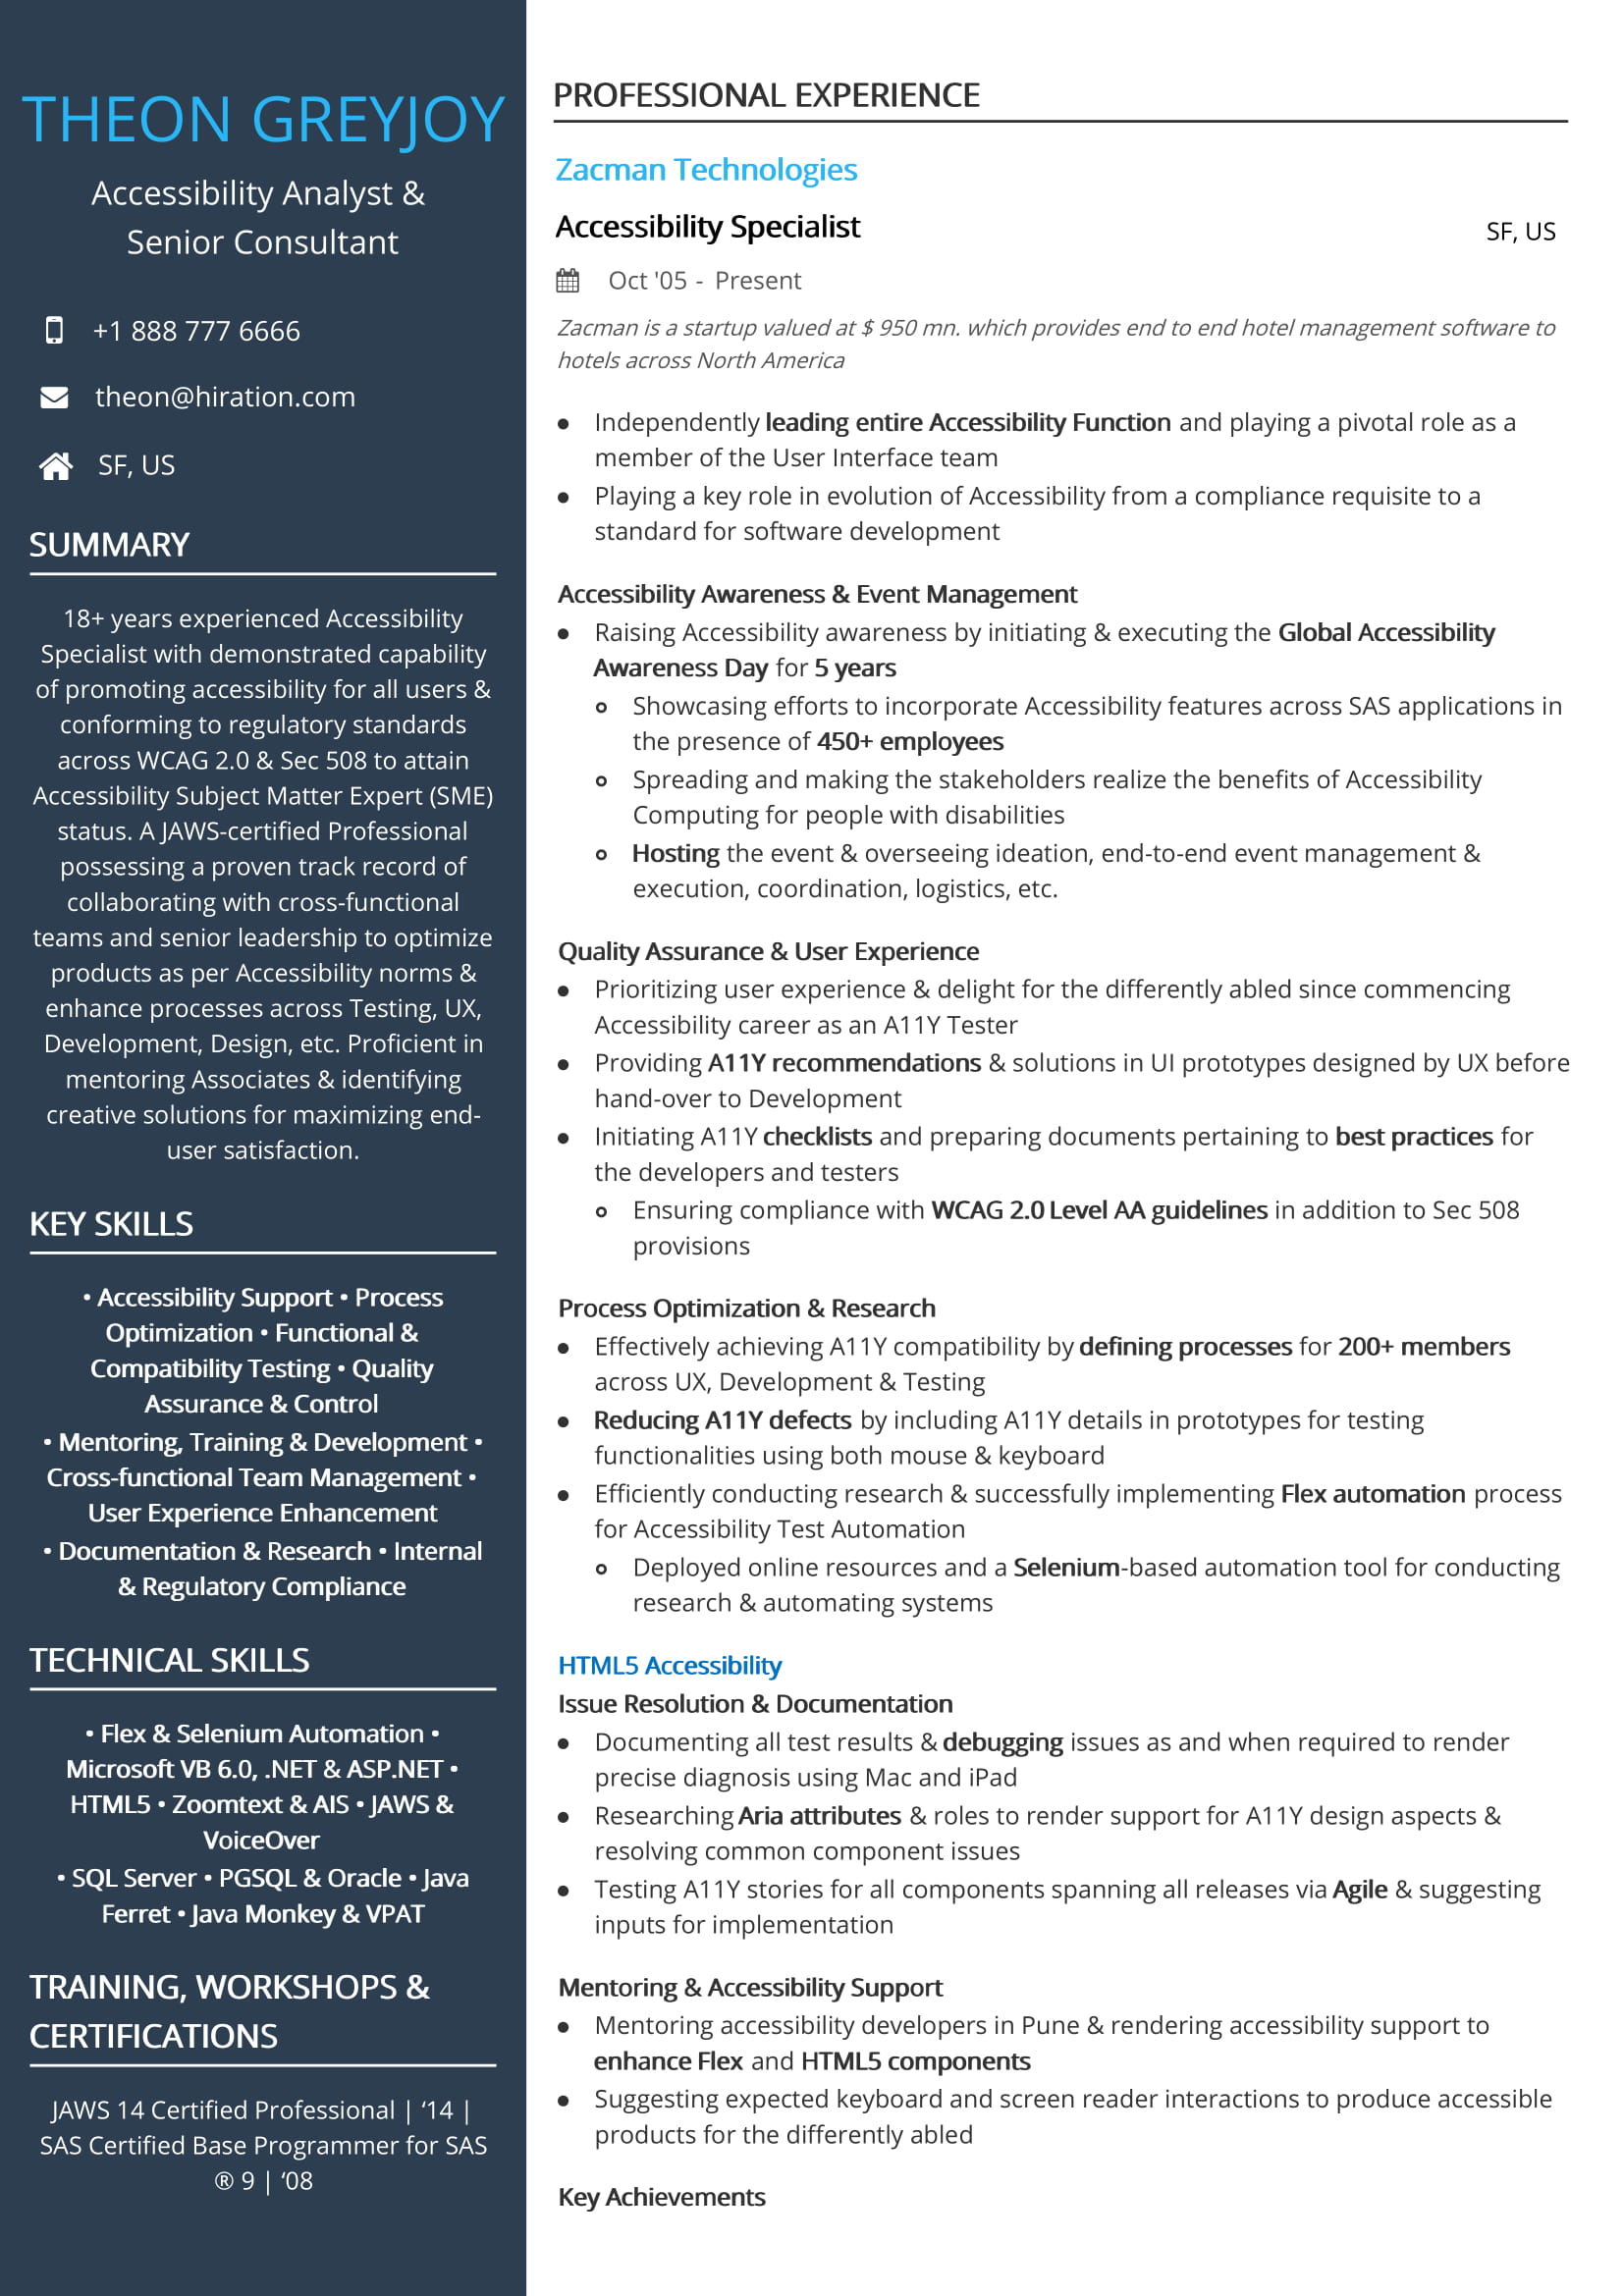 sample qa resume with accessibility testing